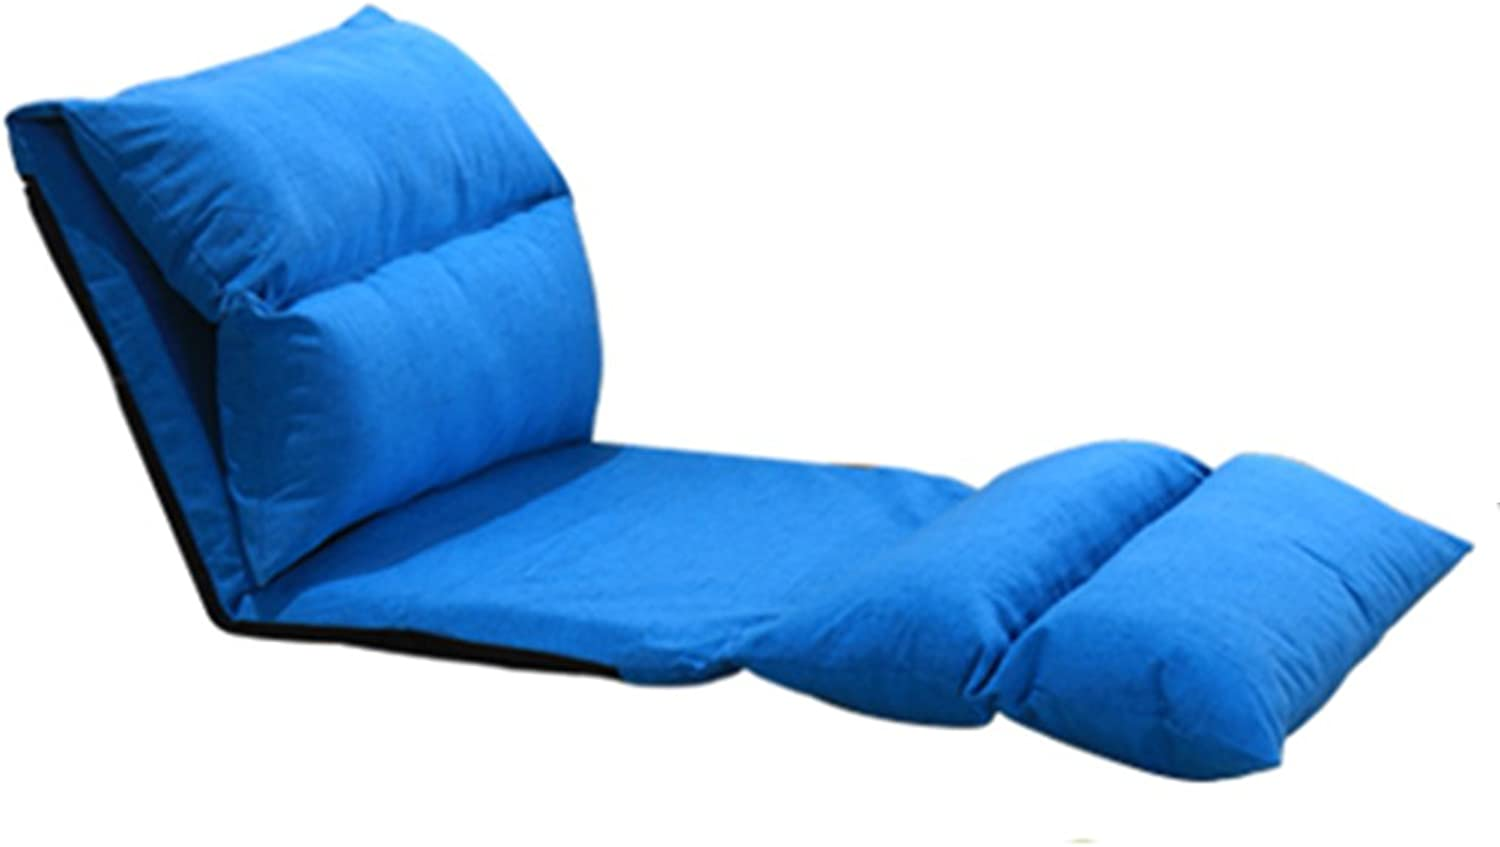 He yan Long Home Beanbag, Collapsible Multi-Speed can be Adjusted Bedroom Small Sofa Backrest Bay Window Chair Foldable Adjustable Bean Bag Lazy Sofa Floor cha (color    3)